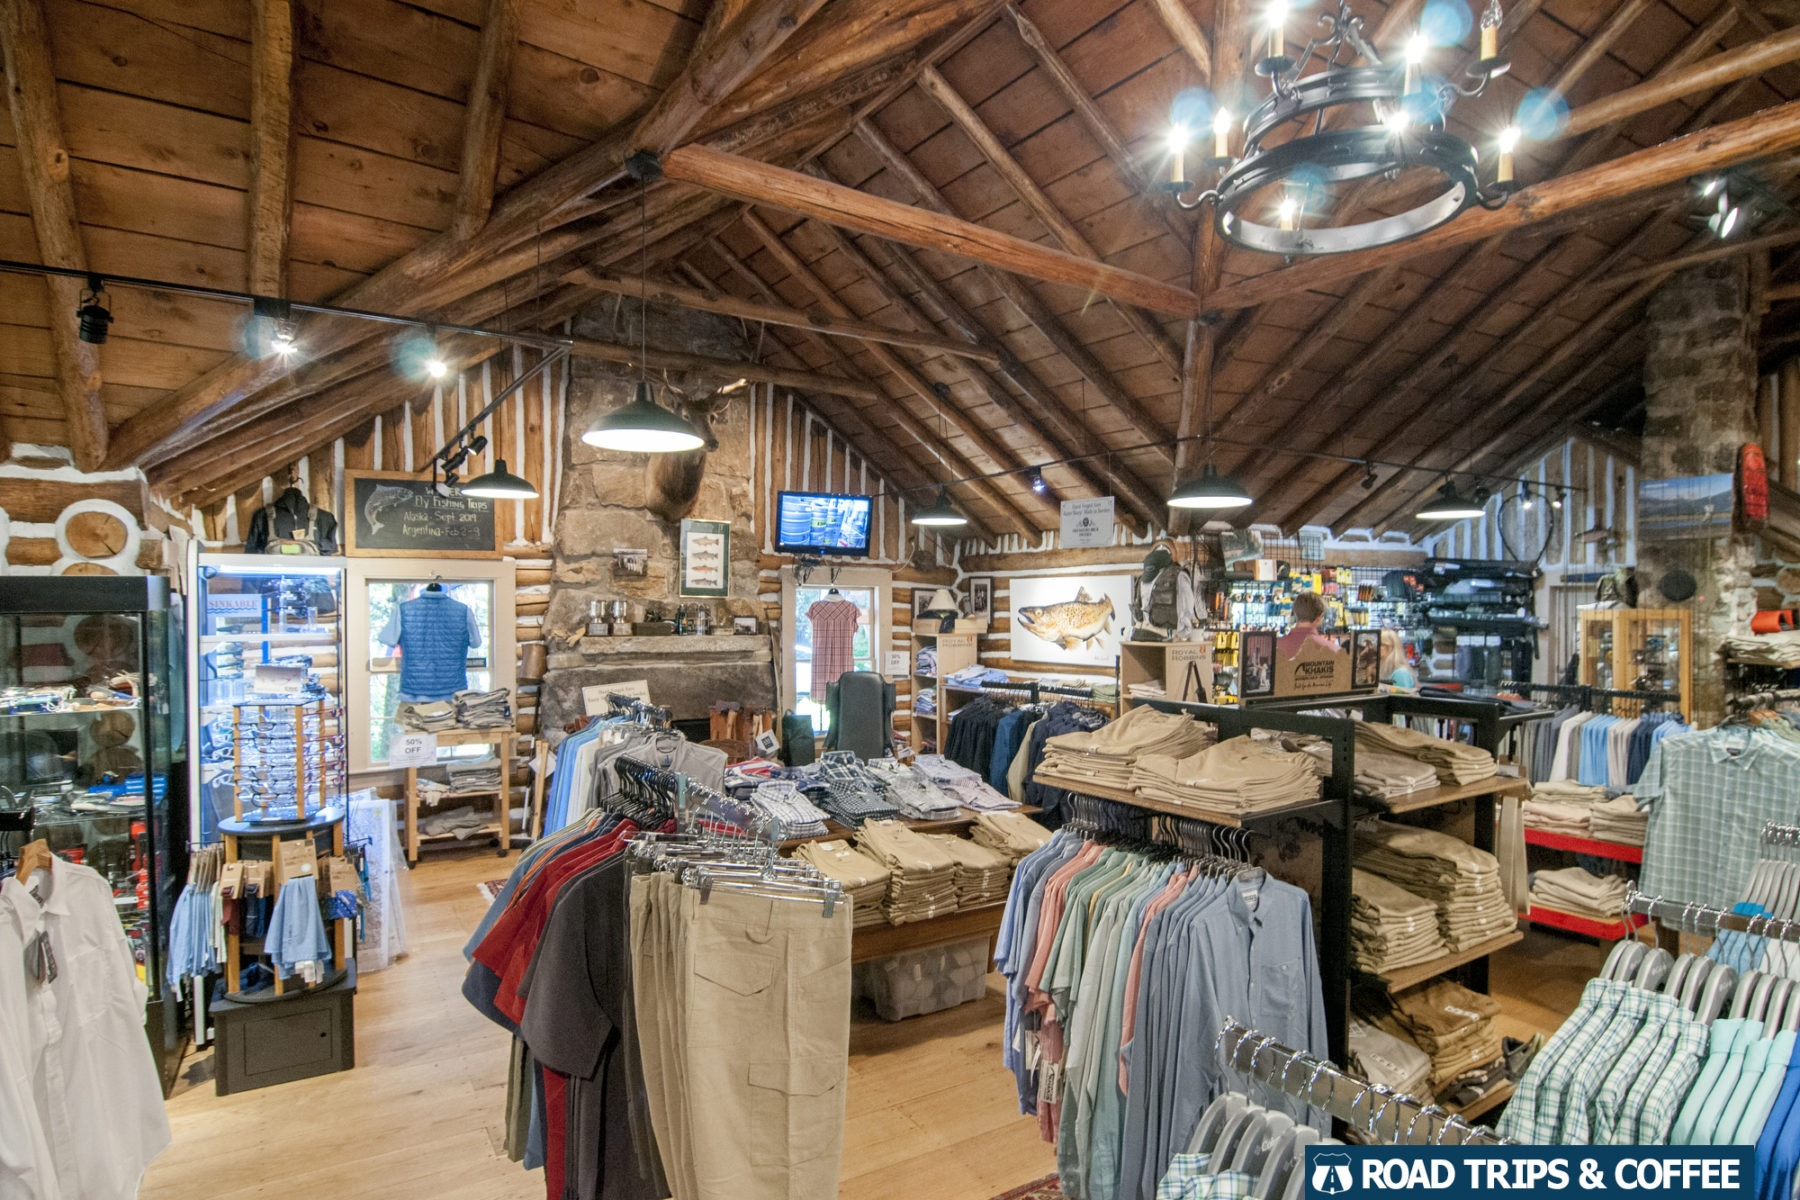 Clothing on dislpay racks and outdoor gear hang on the walls of the log cabin retail shop at Highland Hiker in Highlands, North Carolina